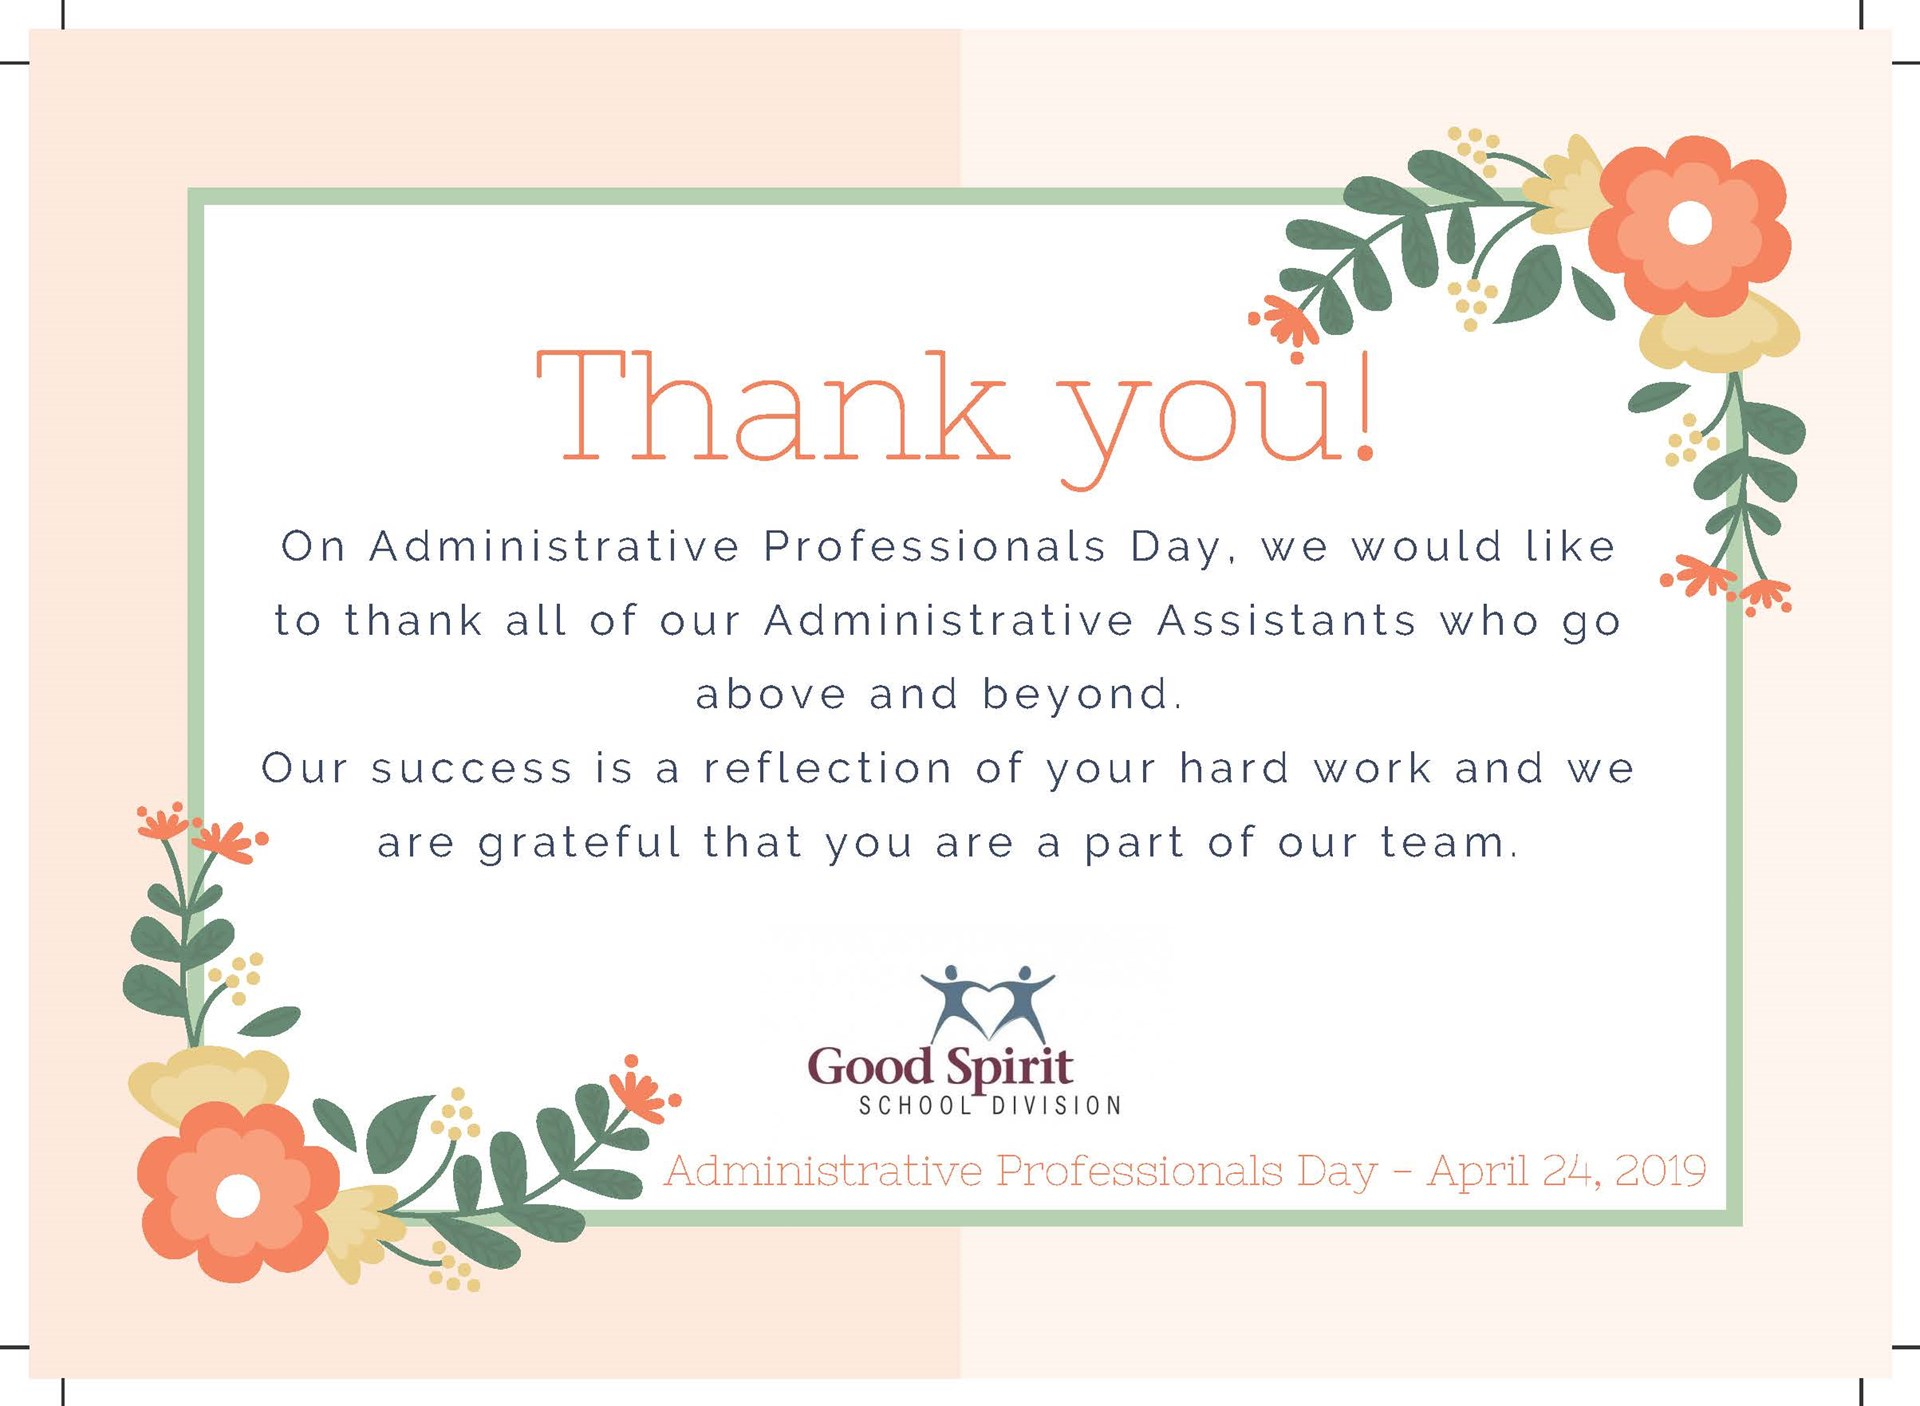 Happy Admin Professionals Day 2019! 1.jpg